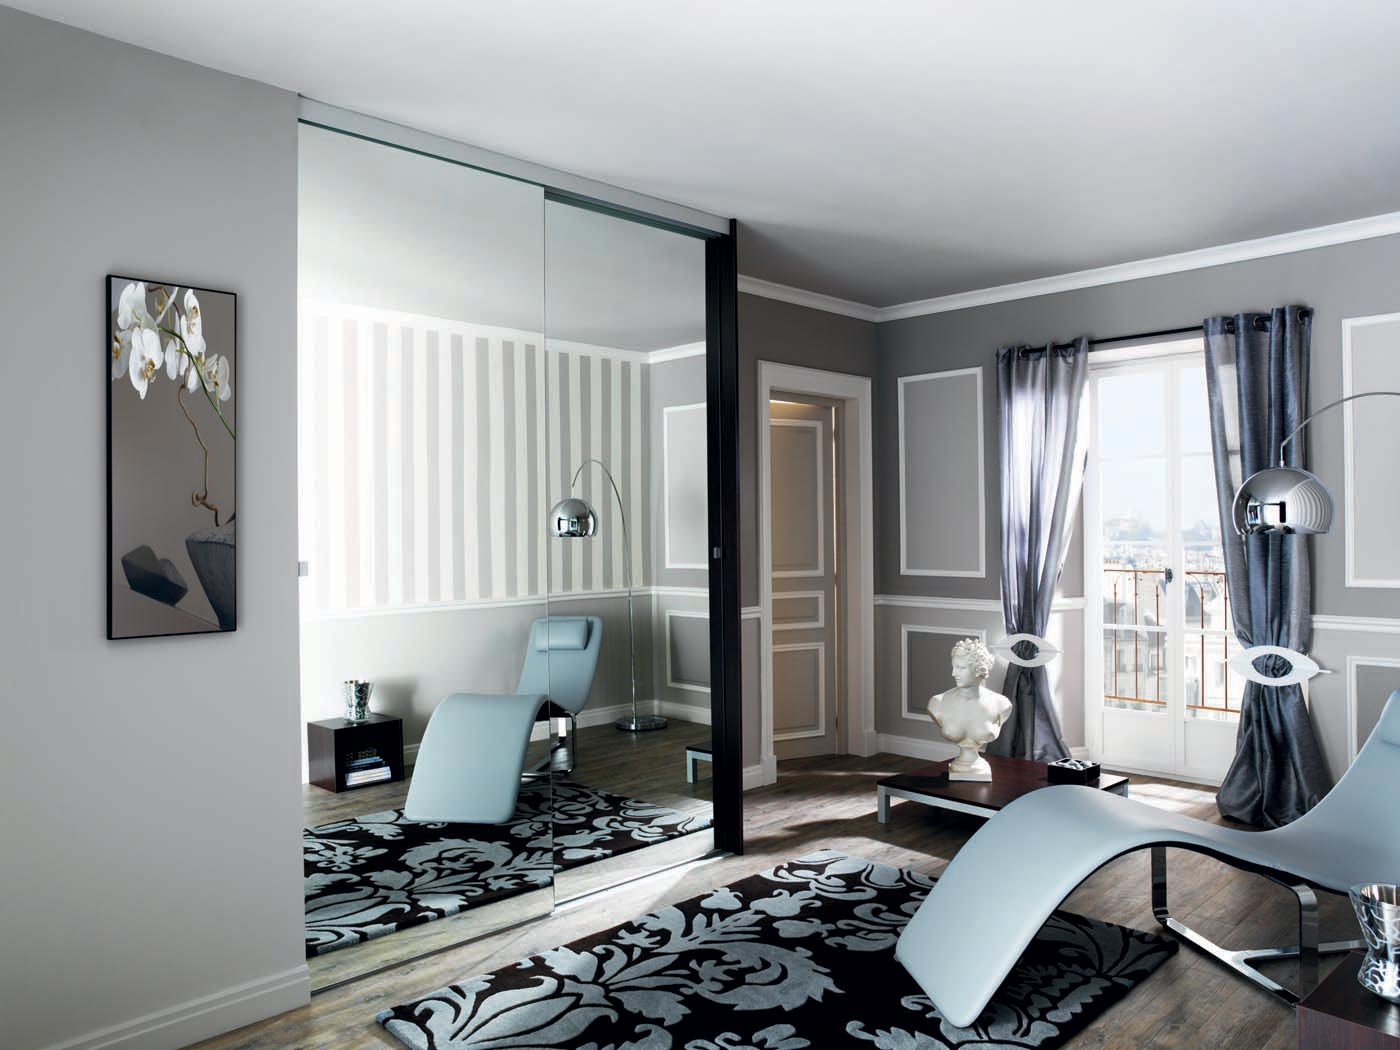 rangements dressing l 39 italienne sky line perene lyon. Black Bedroom Furniture Sets. Home Design Ideas